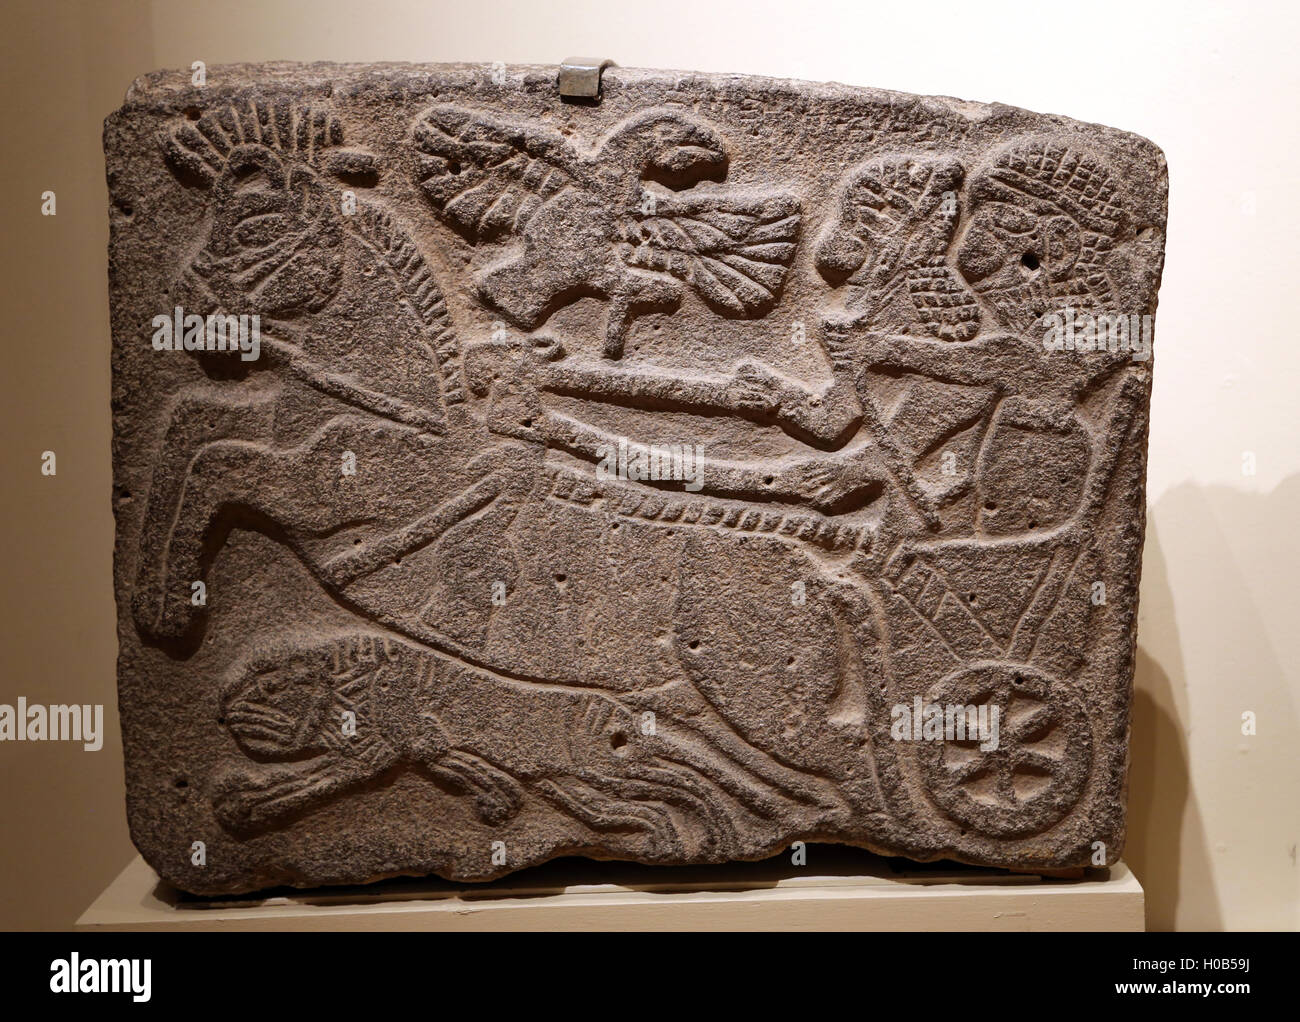 North Syrian. Orthostats relief. Lion-hunt scene. Basalt. Tell Halaf. Wall of Temple Palace. Neo-Hittite period. - Stock Image